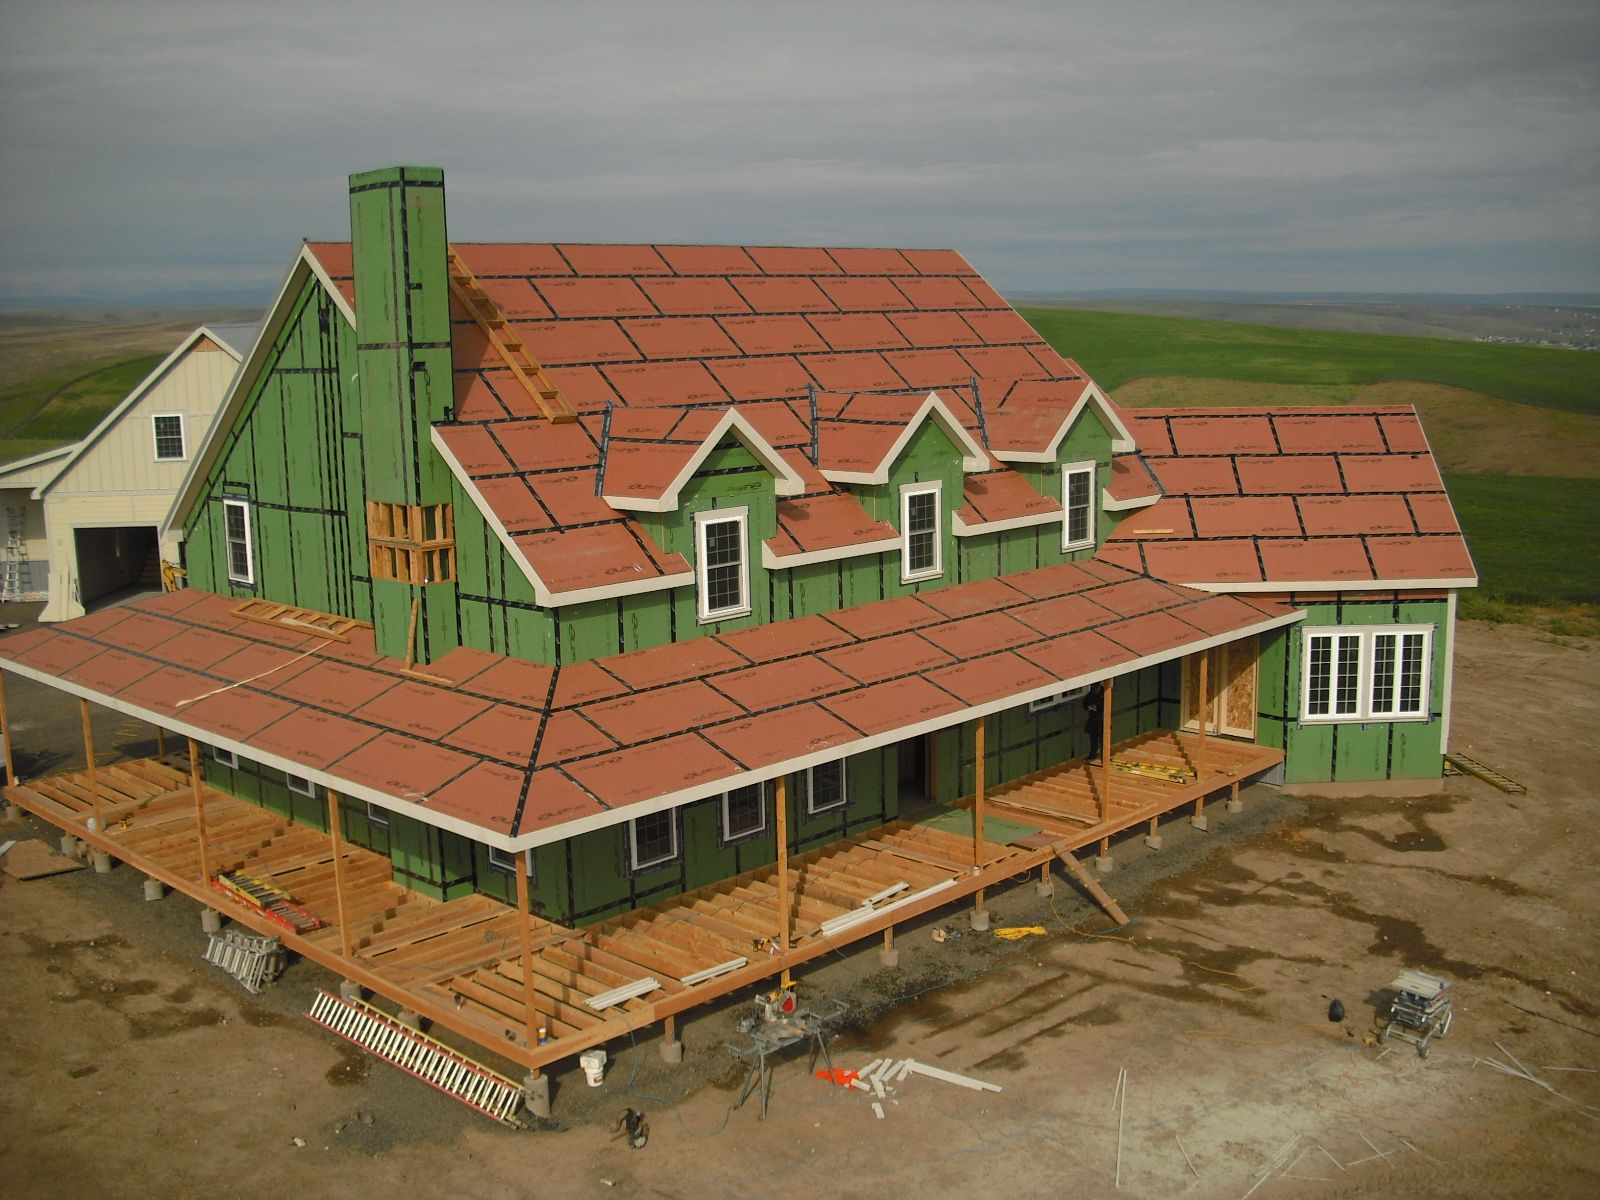 We Have To Hand It To The People At Huber For Coming Up With A Truly Great Product The Zip System Replaces Conventional Tyvek Wraps With A Roof Sheathing Plywood